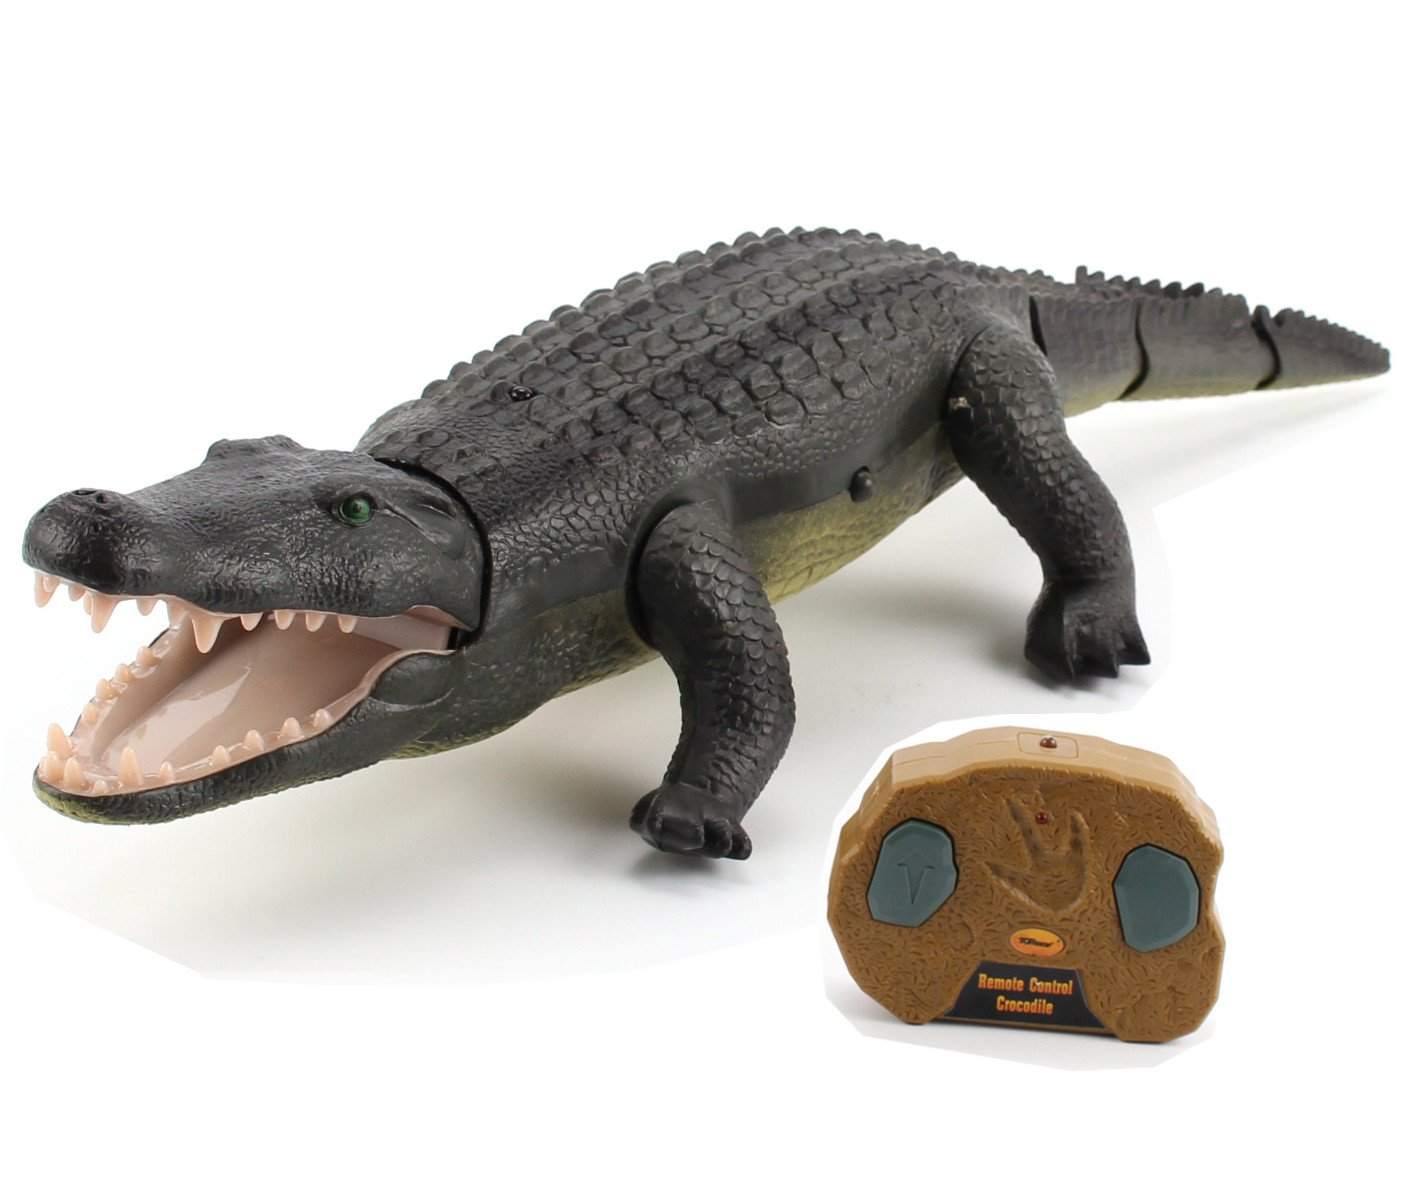 Top Race Remote Control Crocodile, Prank Crocodile RC Animal Toy, Looks Real Feels Real Roars and Moves Like a Real Crocodile (TR-Croc) by Top Race